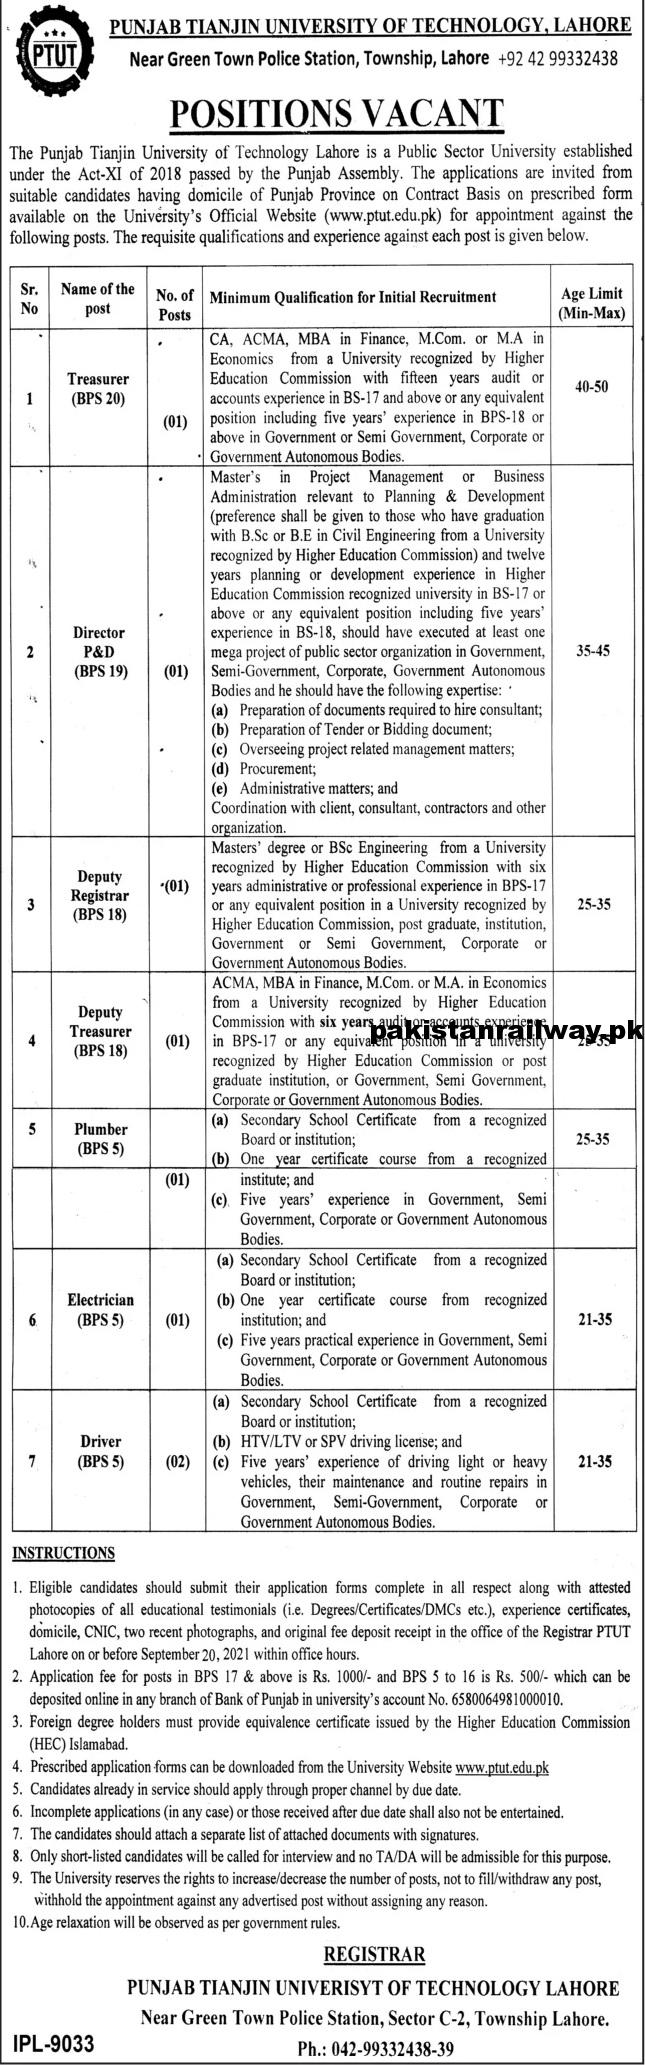 Government Jobs for Middle Pass in Punjab 2021 At PTUT Punjab Tianjin University of Technology